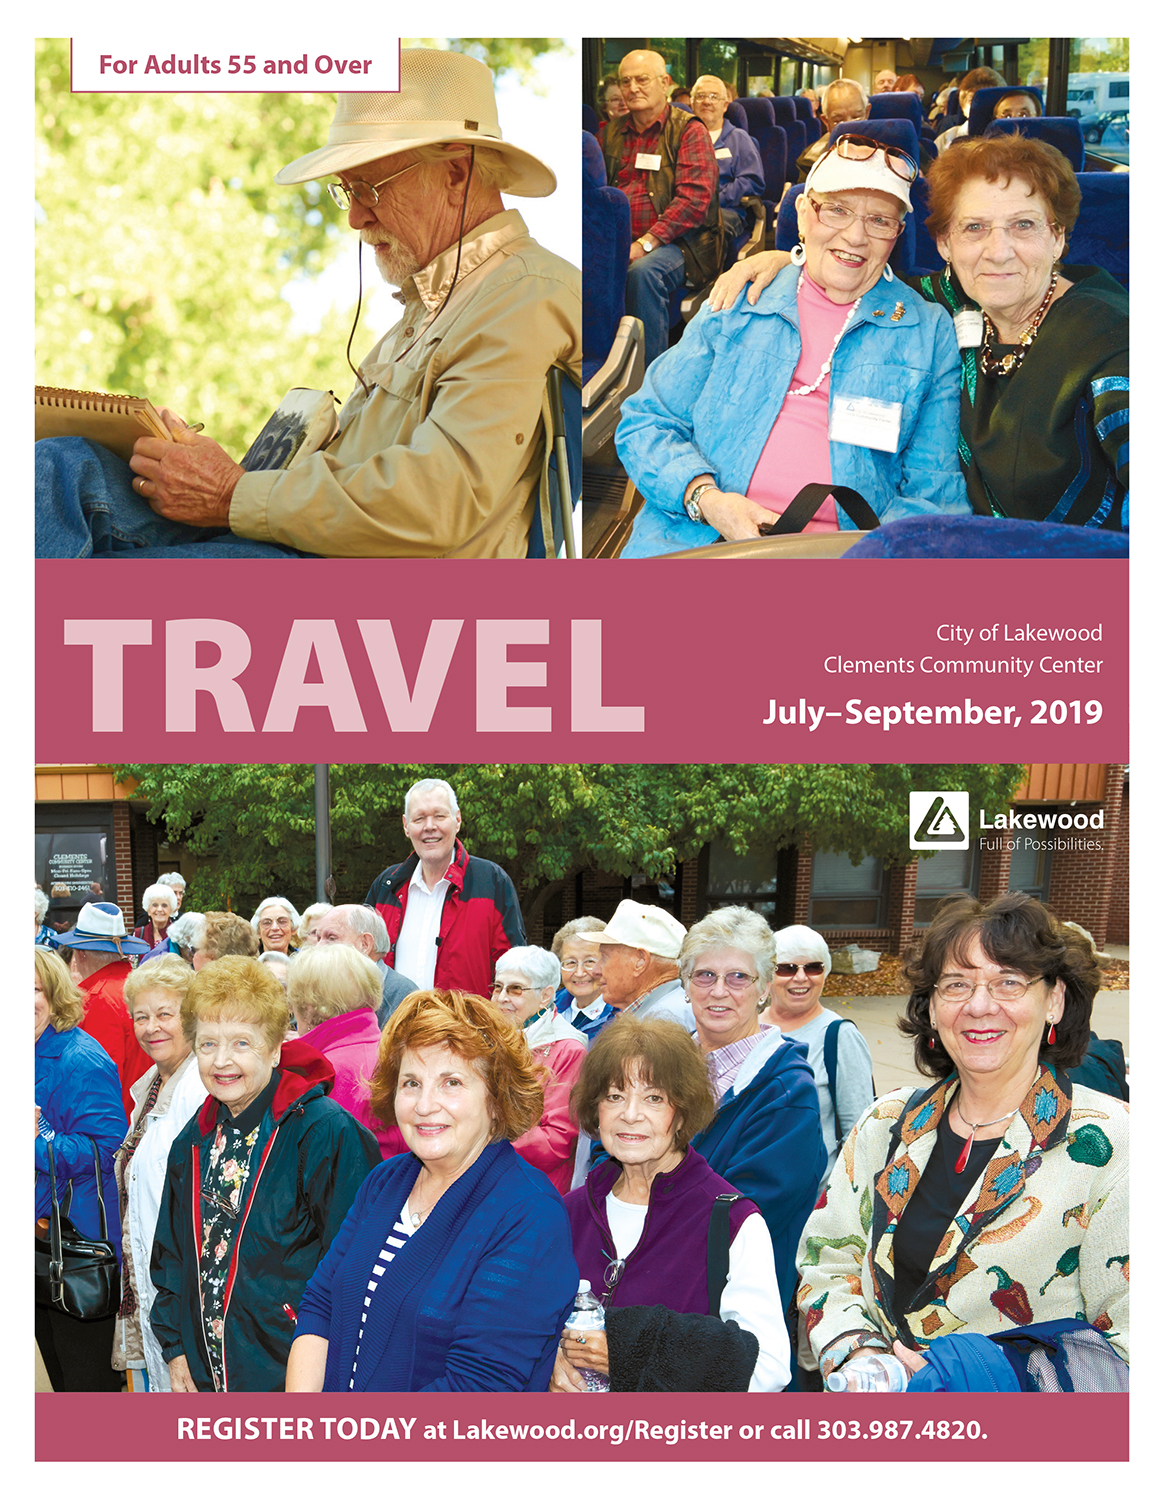 Travel_Brochure_JUL-SEPT_2019_PRINT-1.jpg